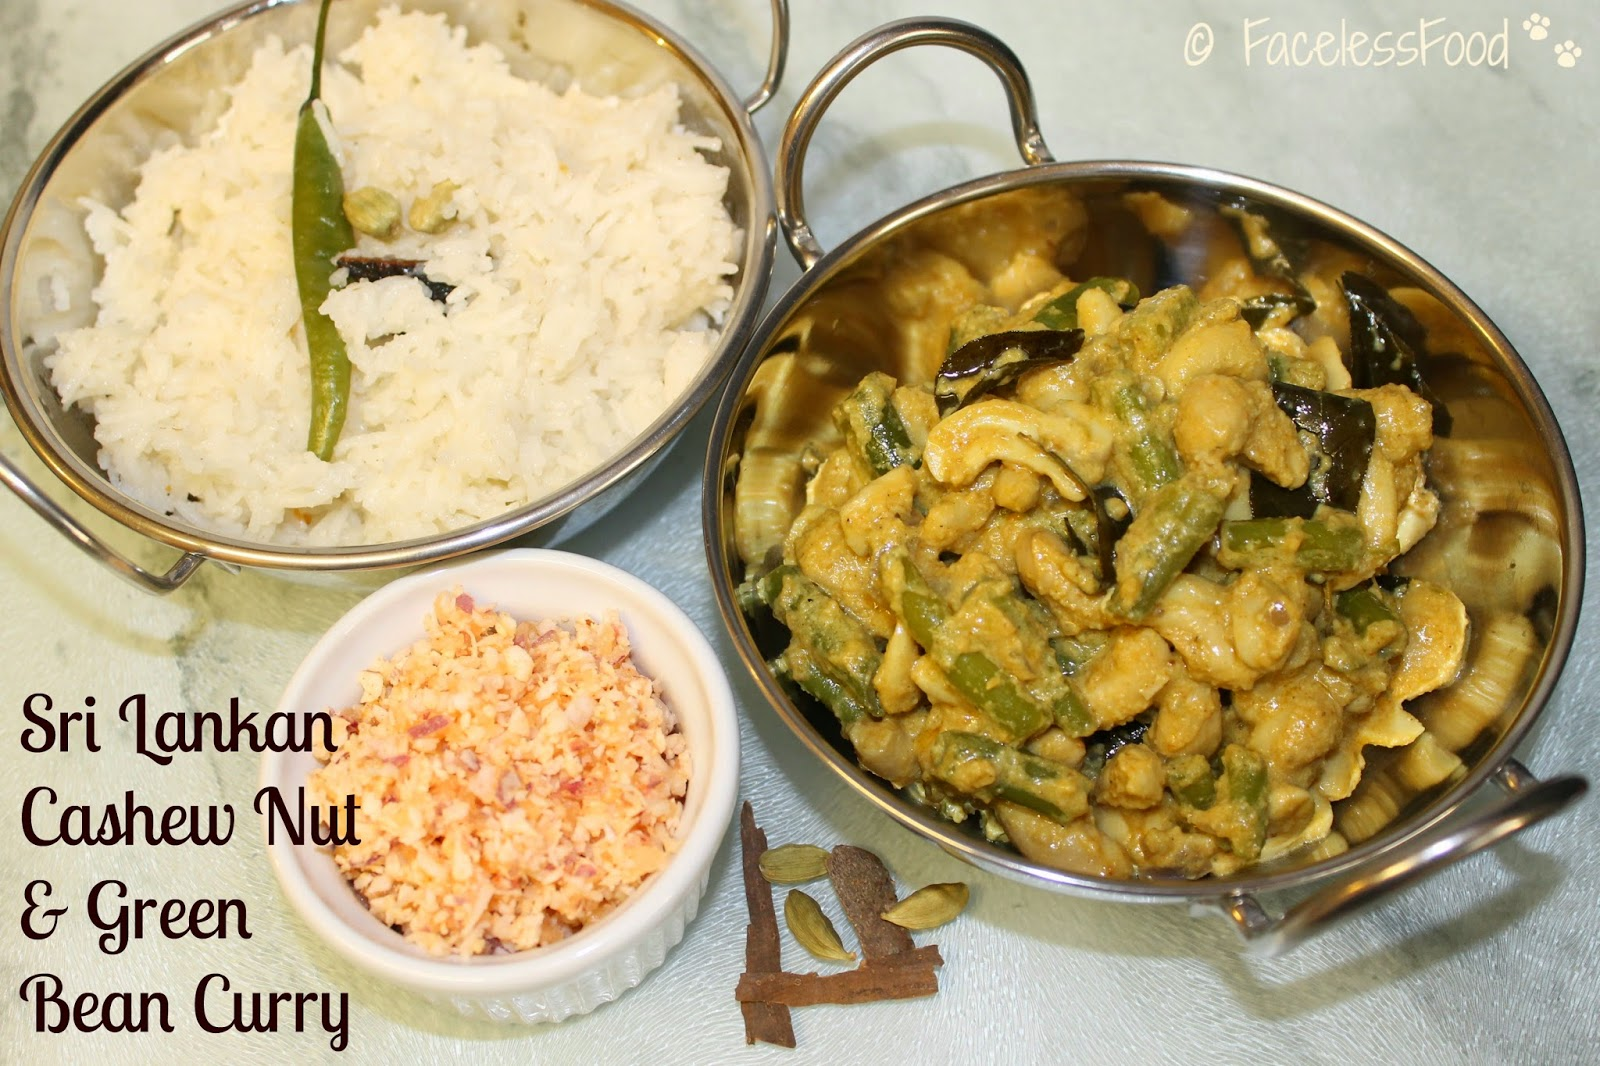 ... review, plus a recipe for Sri Lankan Cashew Nut & Green Bean Curry